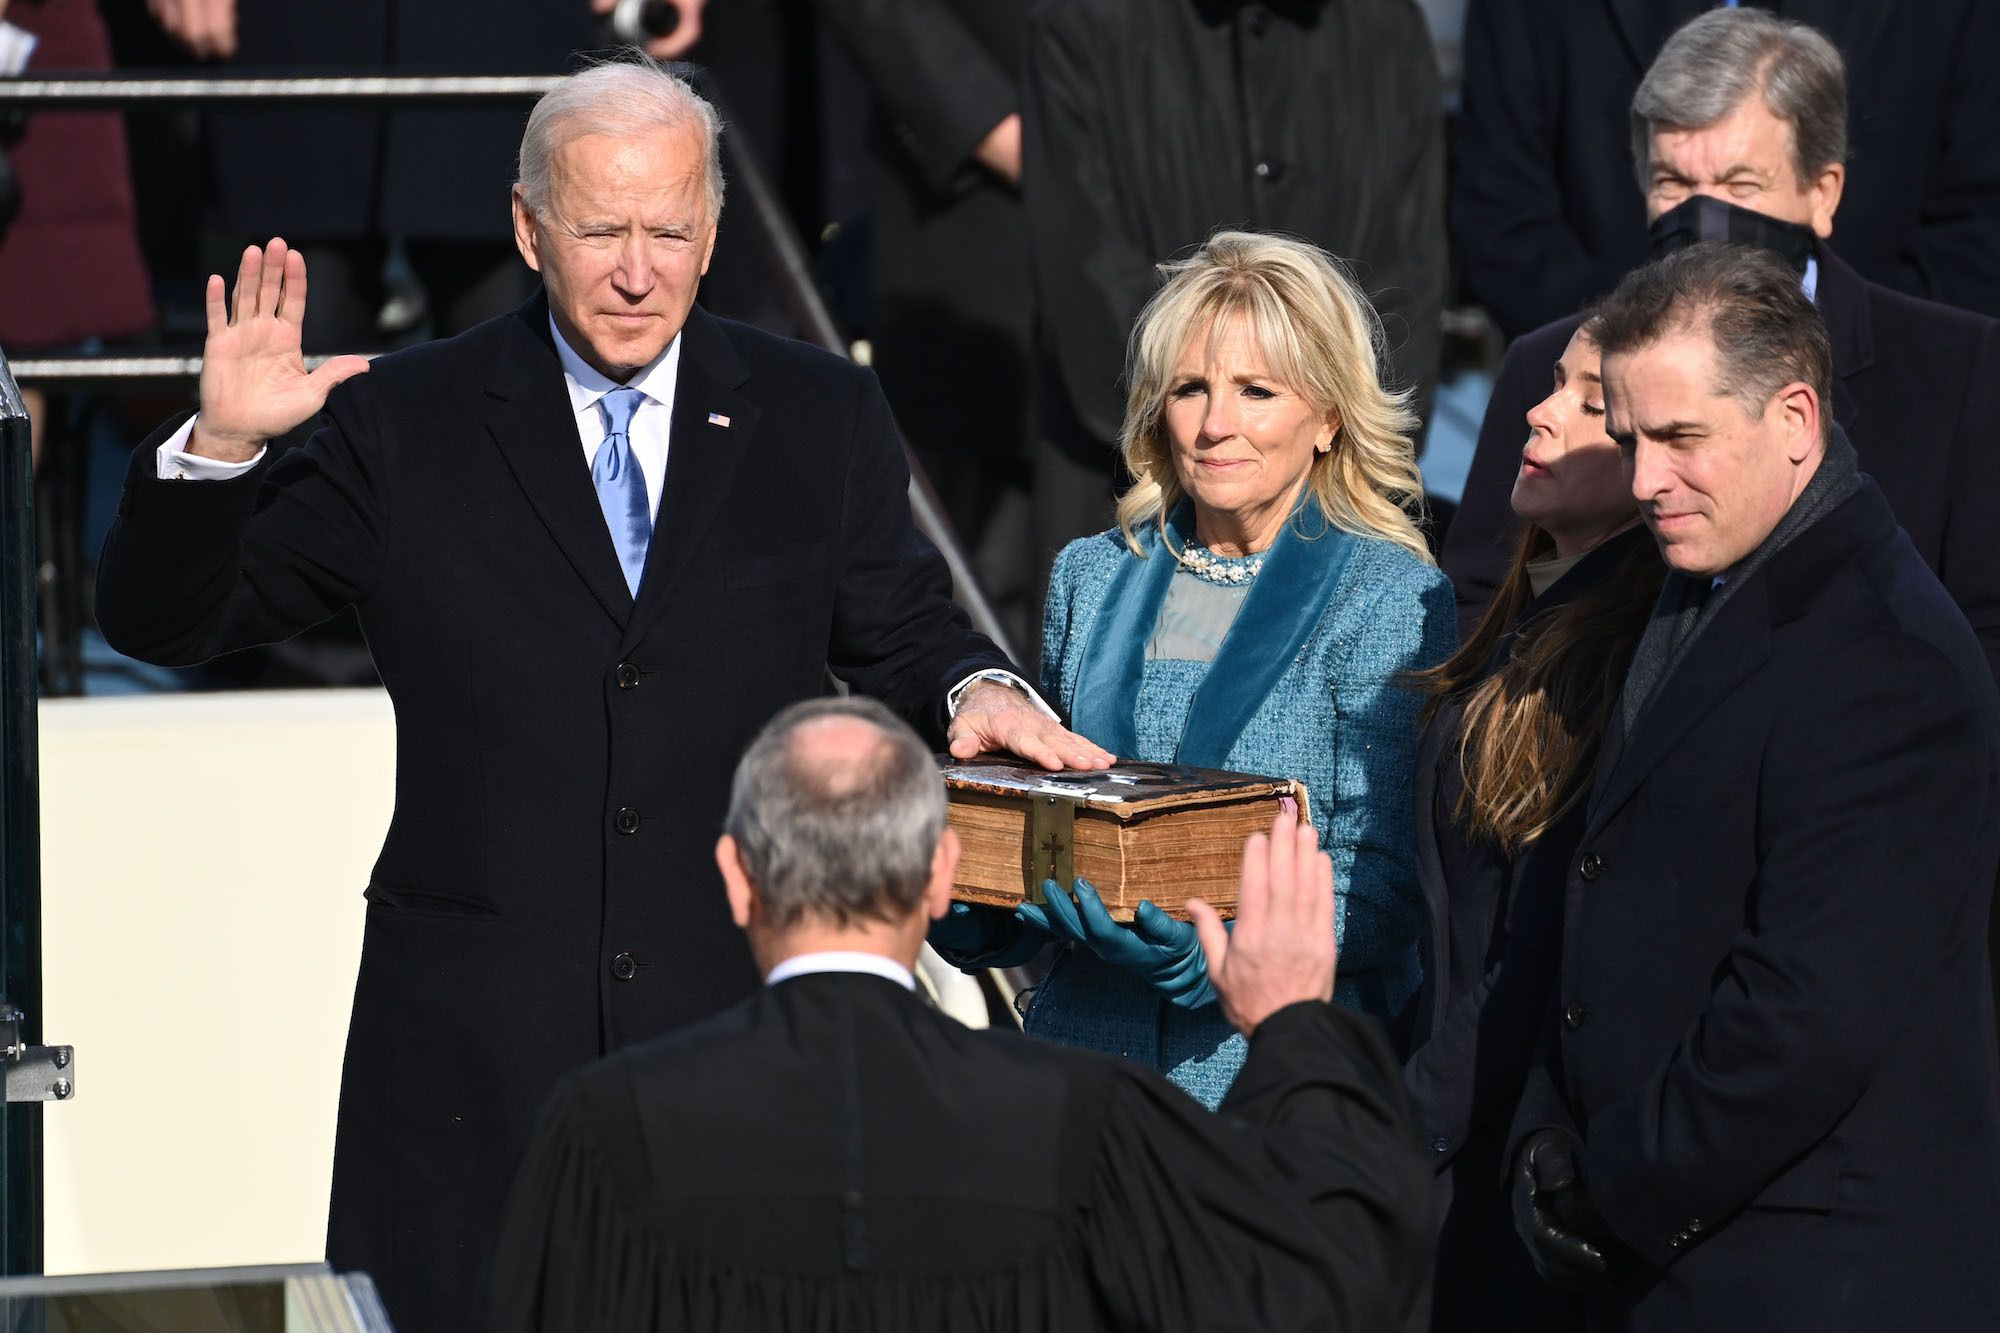 WASHINGTON, DC - JANUARY 20: US President-elect Joe Biden is sworn in as his wife Jill Biden holds the Bible during the 59th Presidential Inauguration at the U.S. Capitol on January 20, 2021 in Washington, DC. During today's inauguration ceremony Joe Biden becomes the 46th president of the United States. (Photo by Saul Loeb - Pool/Getty Images)